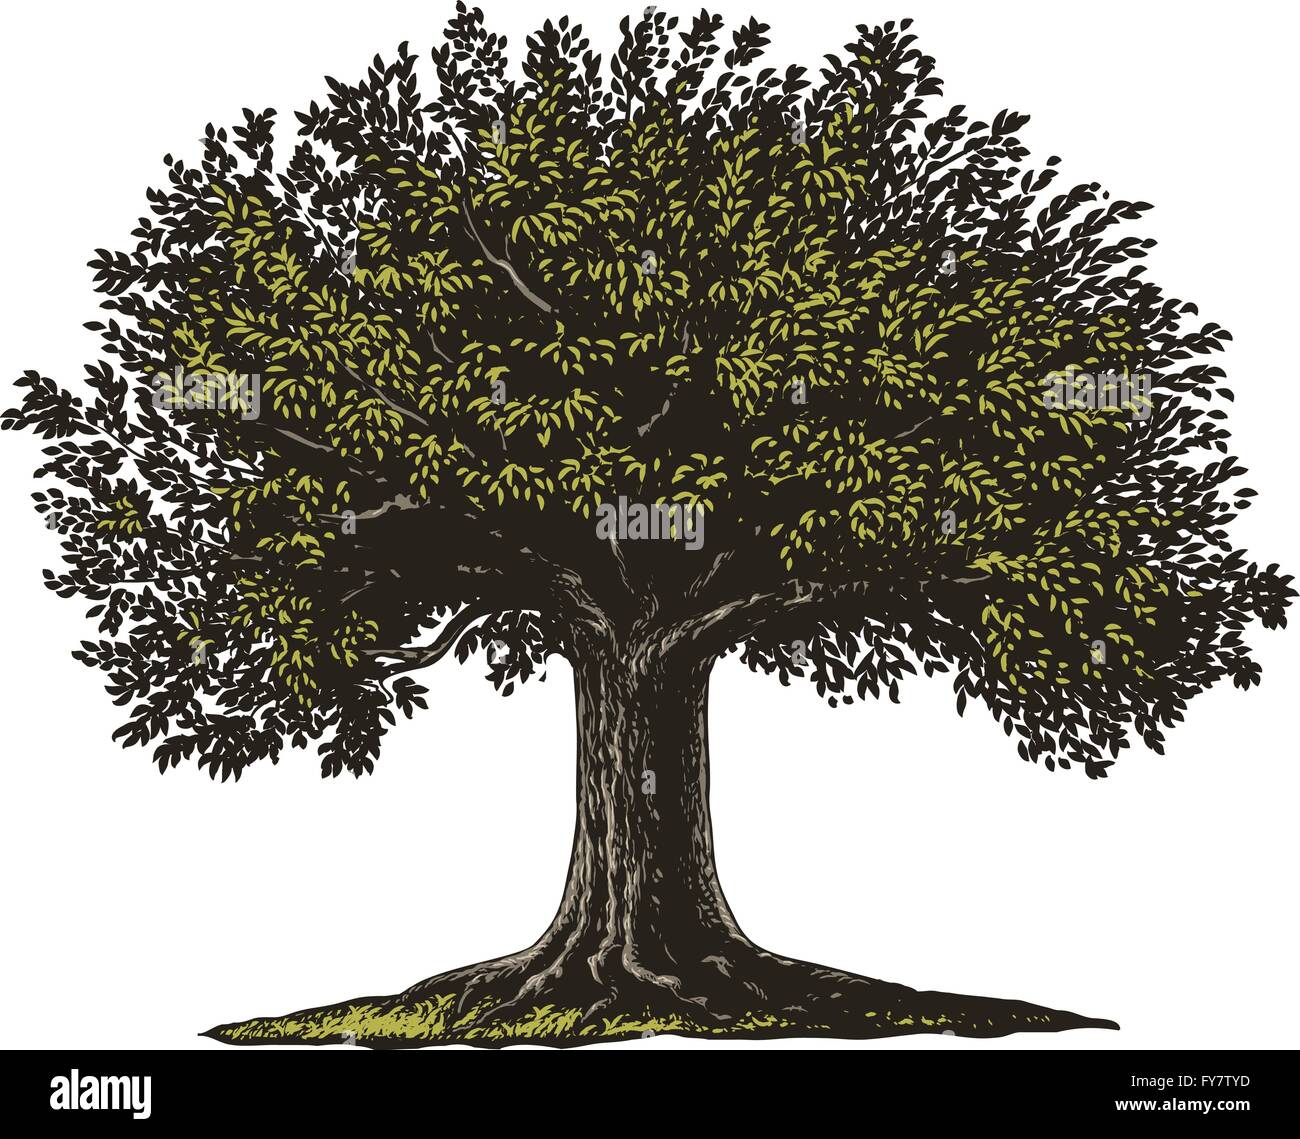 Vector illustration of a fruit tree in vintage engraving style. - Stock Vector